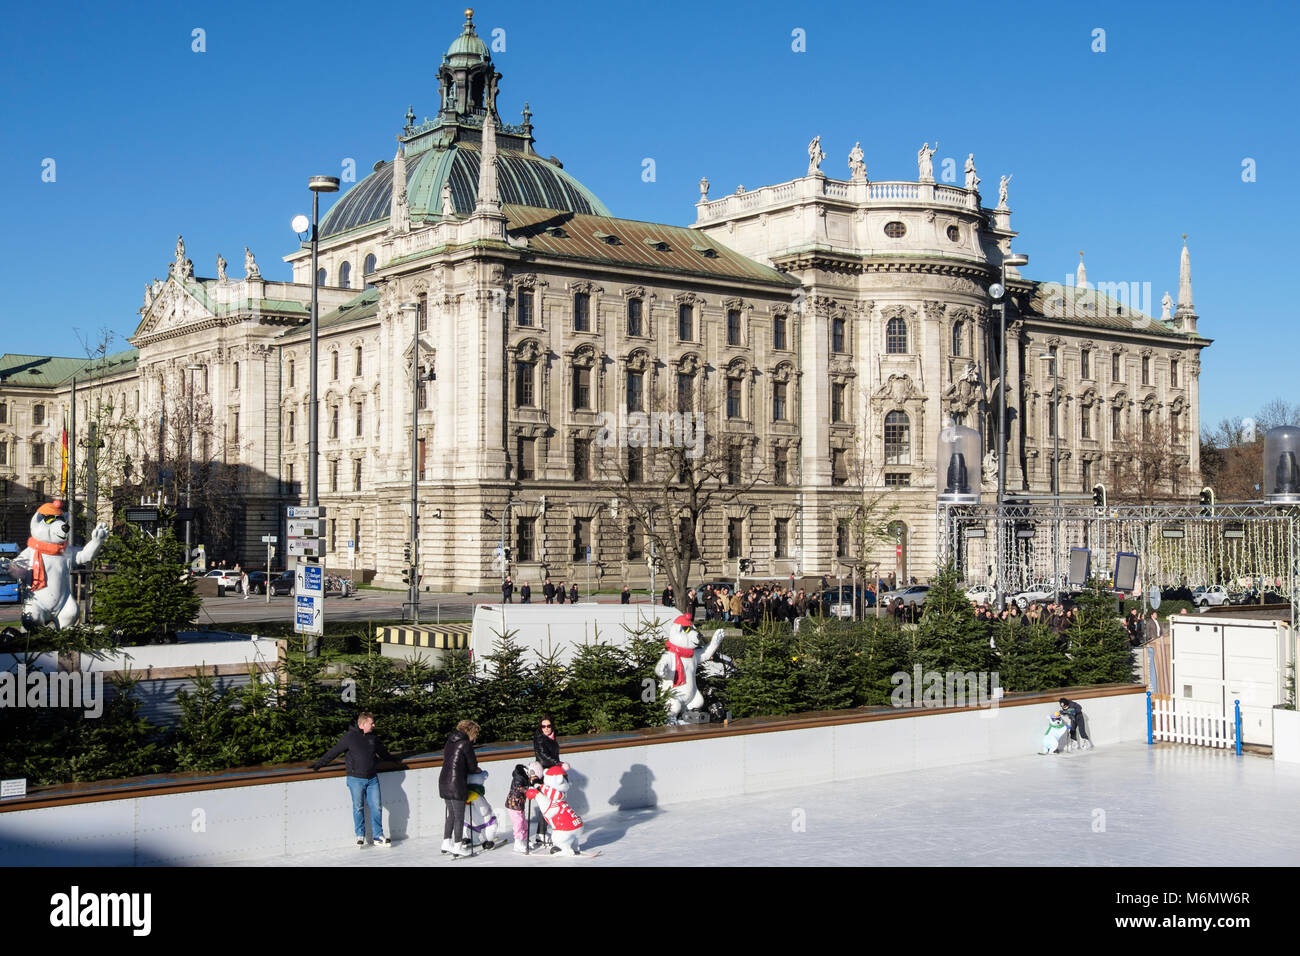 People ice skate on a public Ice skating rink with Justizpalast Munich Palace of Justice behind. Stachus Karlsplatz, - Stock Image